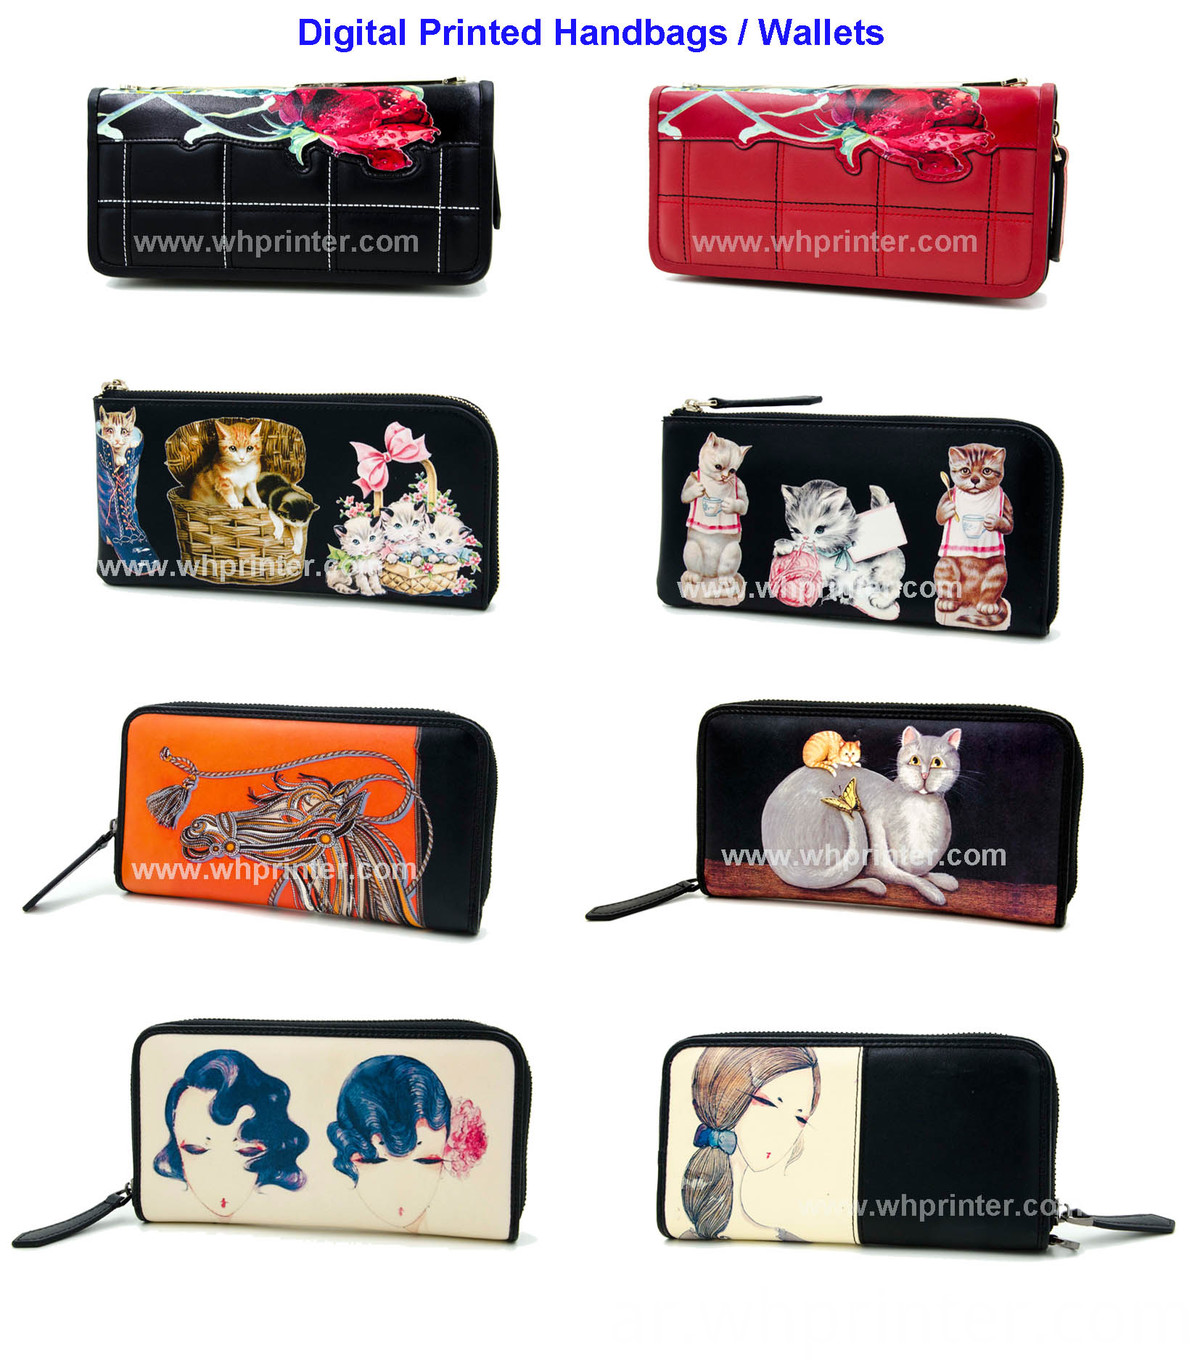 digital printed handbag and wallets